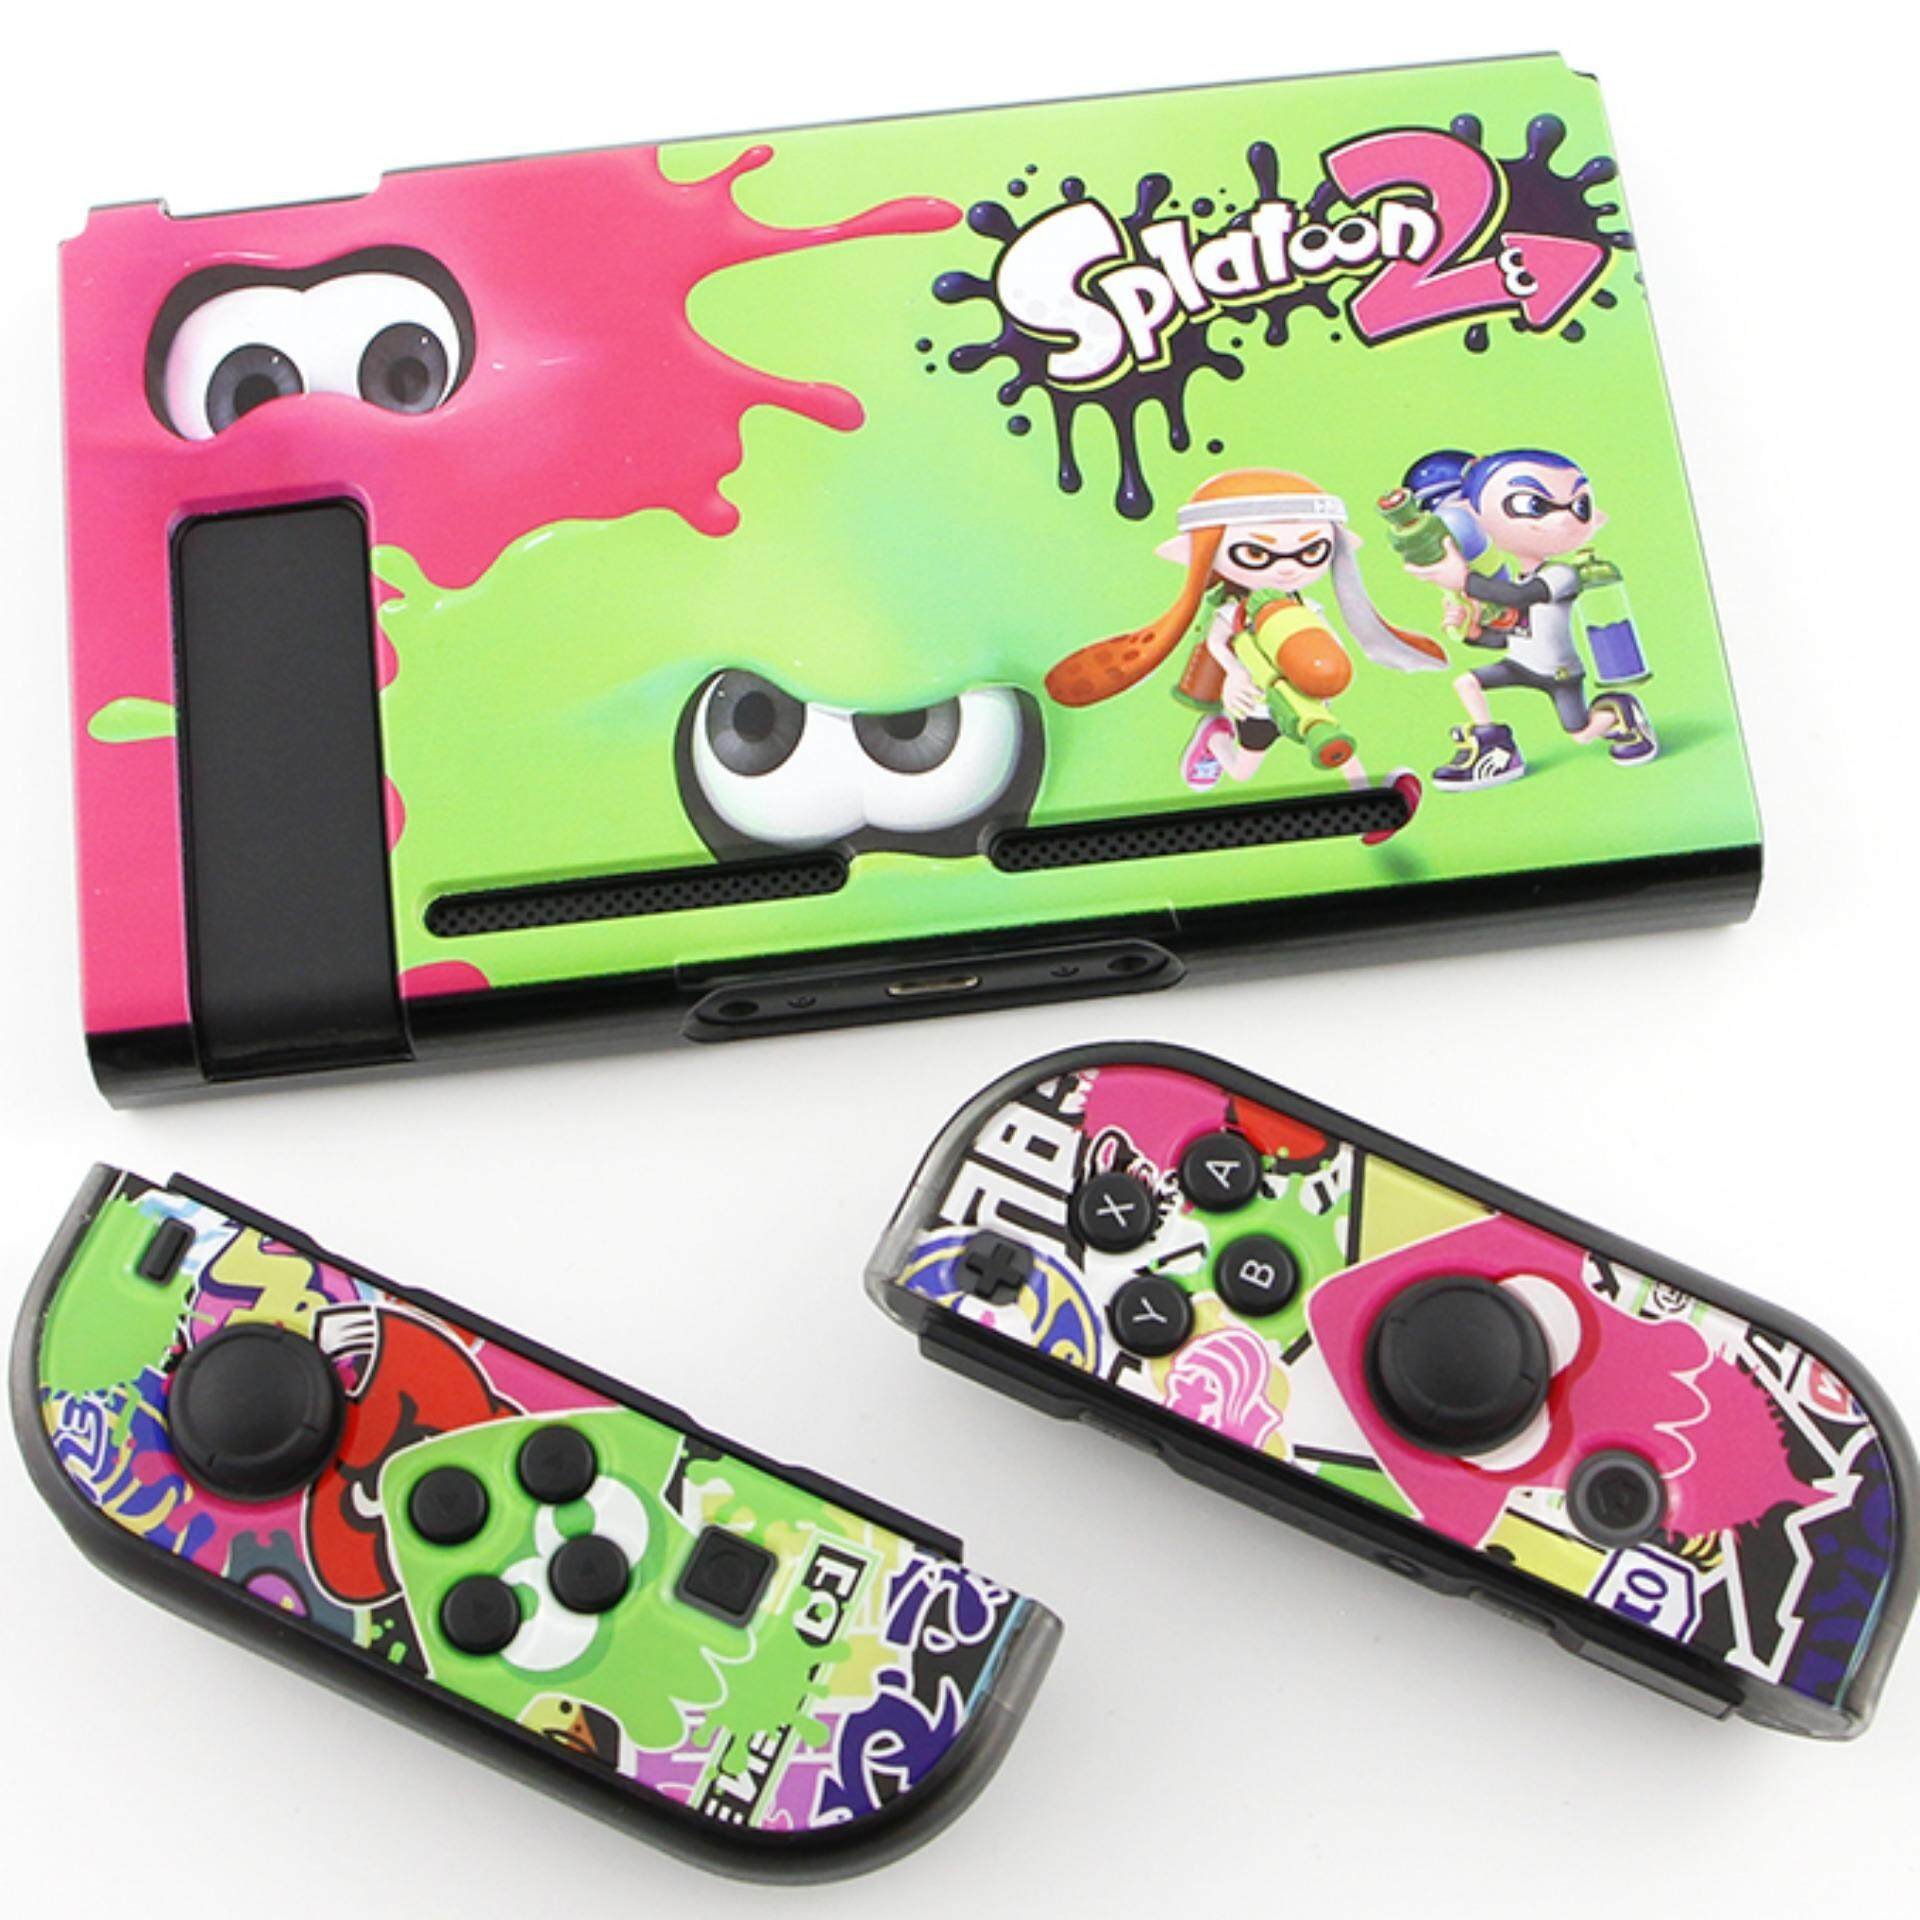 Buy Sell Cheapest Splatoon 2 Nintendo Best Quality Product Deals Switch Quick Pouch Splatoon2 Abs Protective Cover Case For Ns Nx Handheld Game Console And Controllers